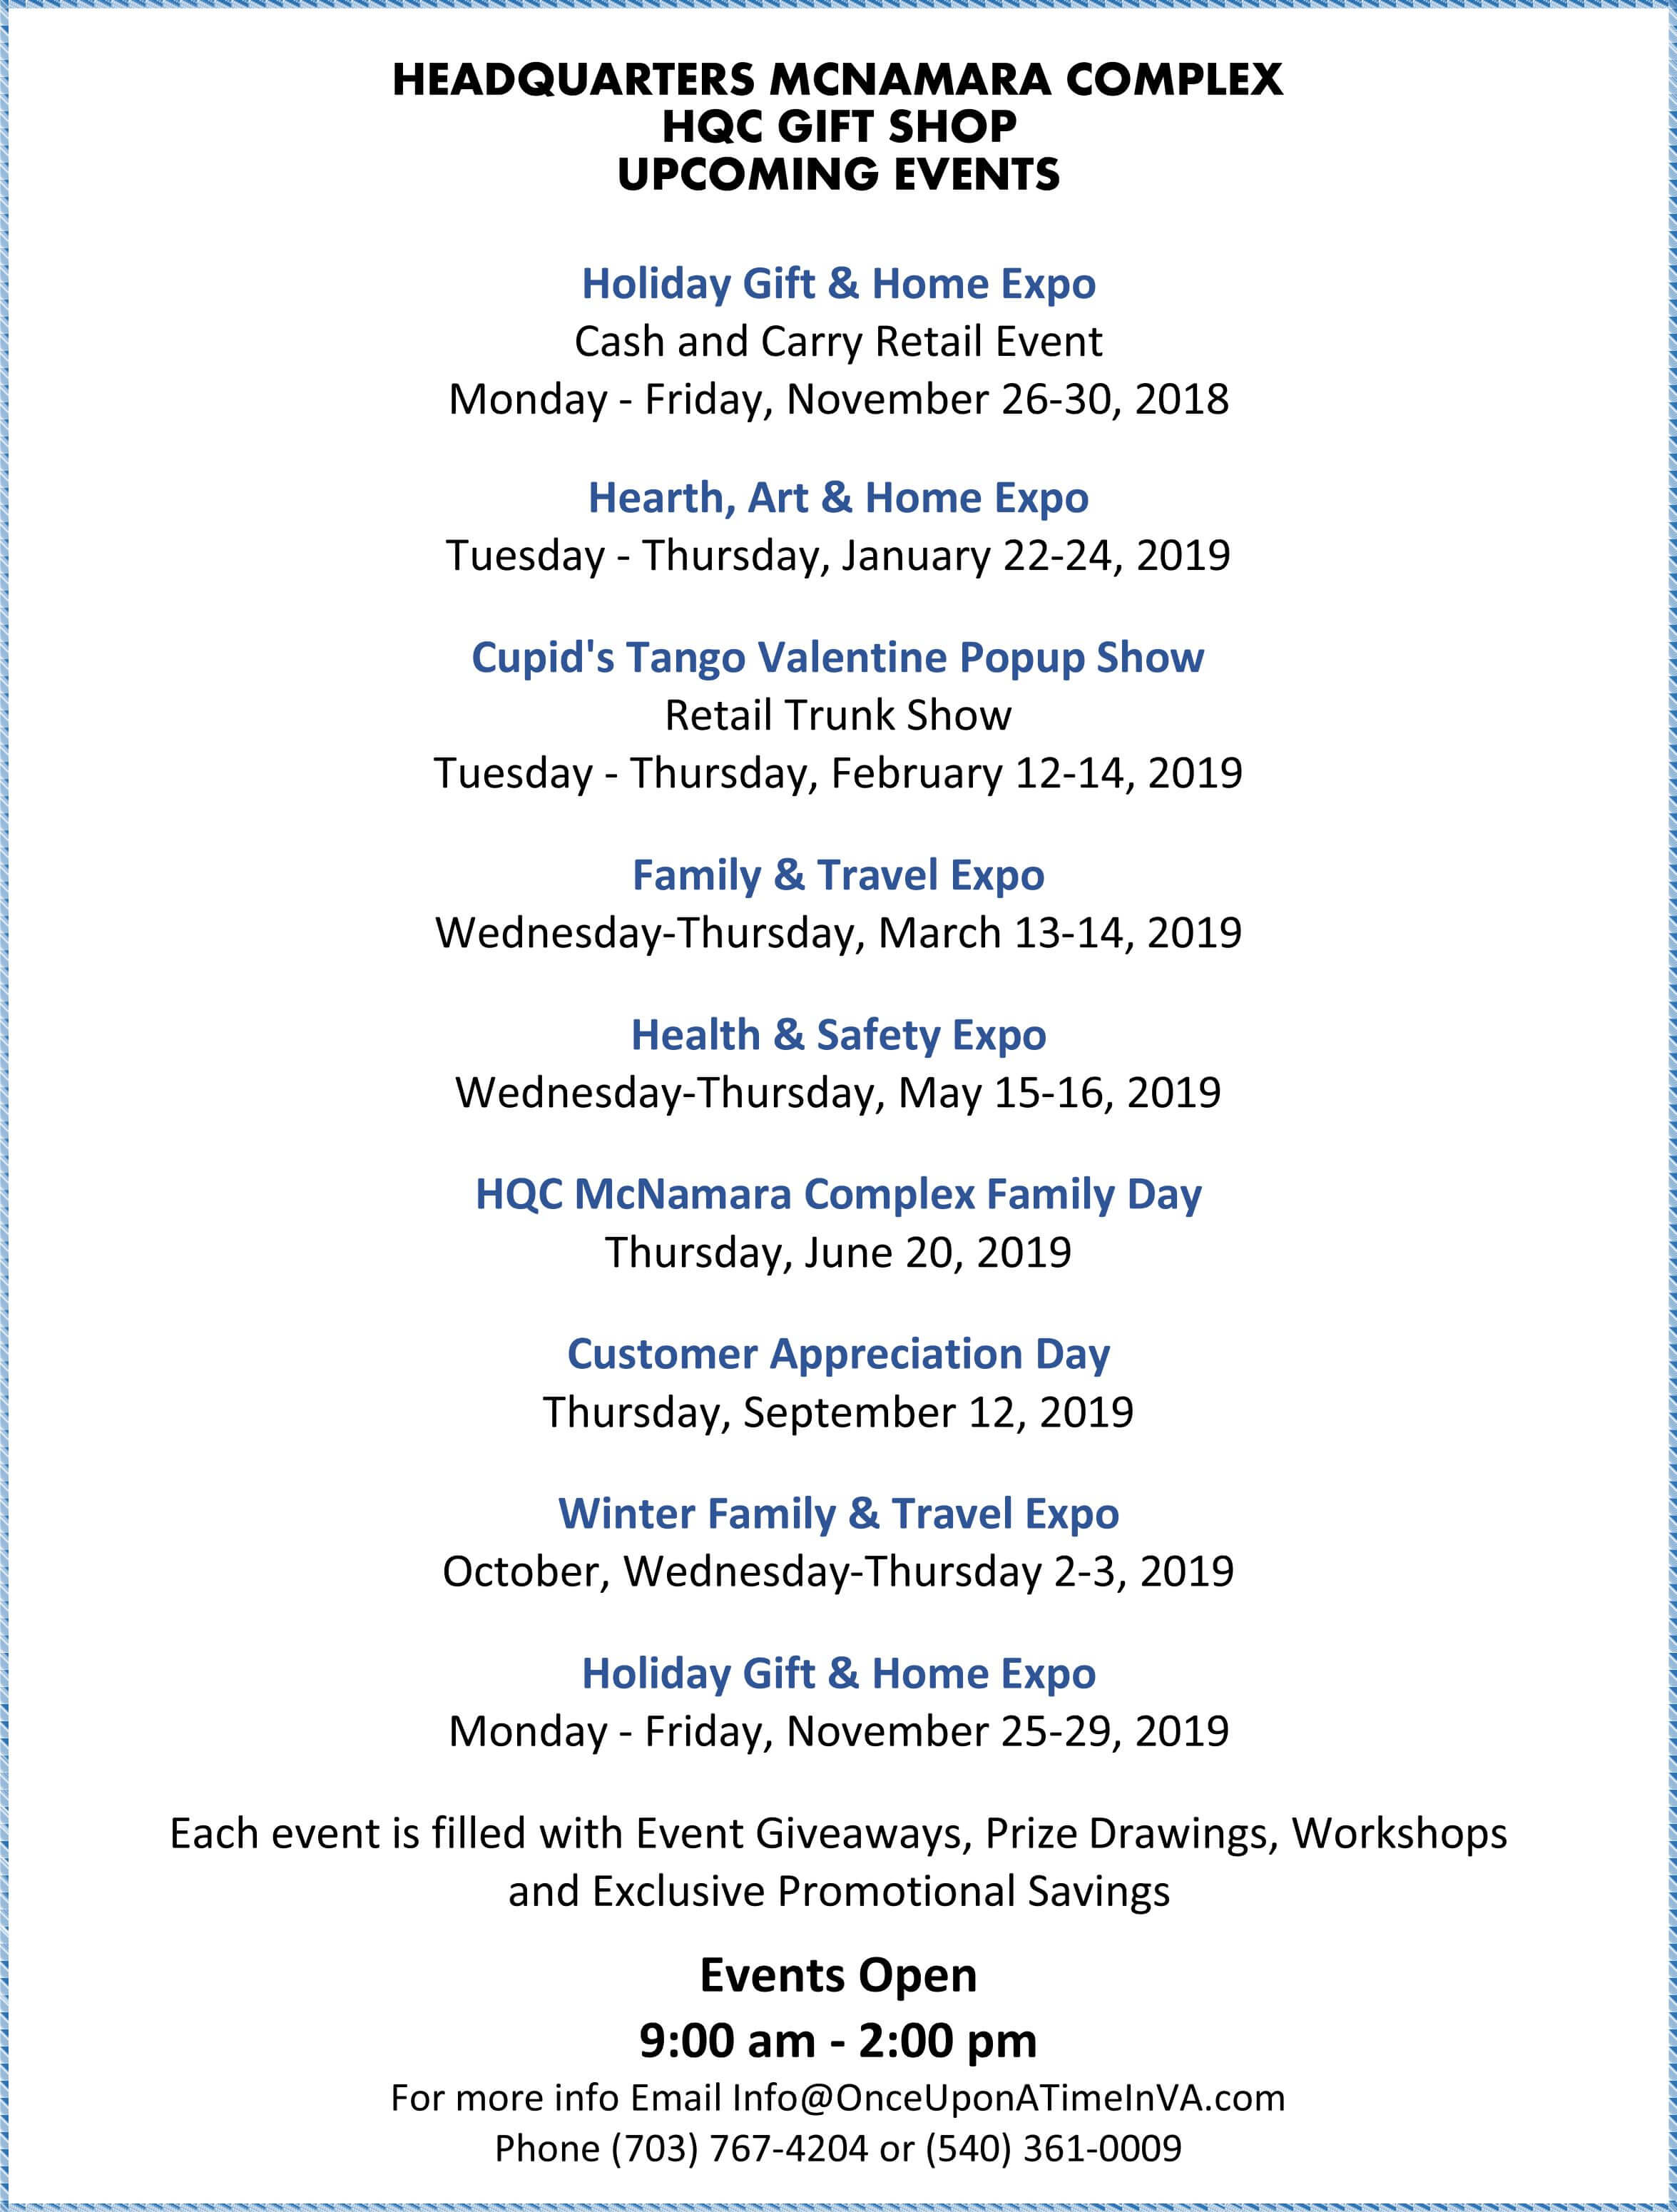 Image of the HQC Gift Shop's Annual Events Calendar-- click to open as PDF